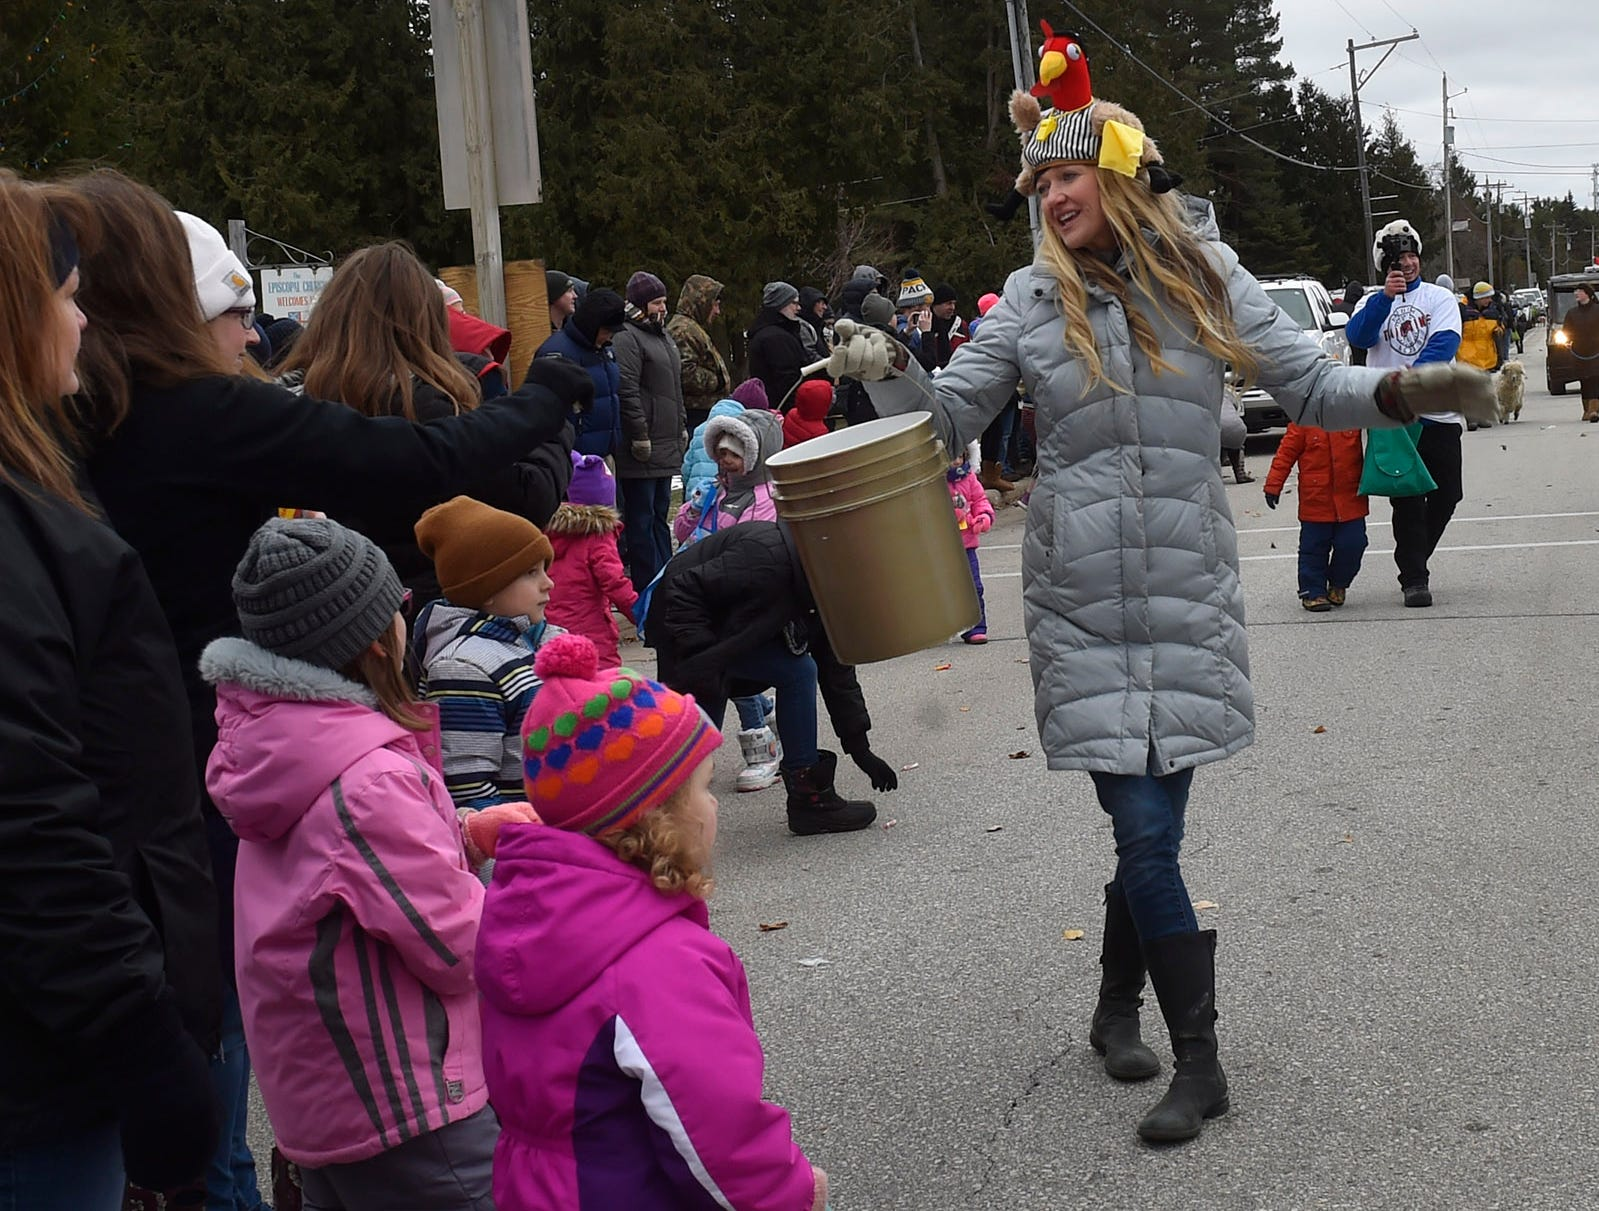 Volunteer Lindsay De Young collecting for the the community fund raising Thanksgiving Day Parade in Jacksonport on Thursday, Nov. 22, 2018. Tina M. Gohr/USA TODAY NETWORK-Wisconsin